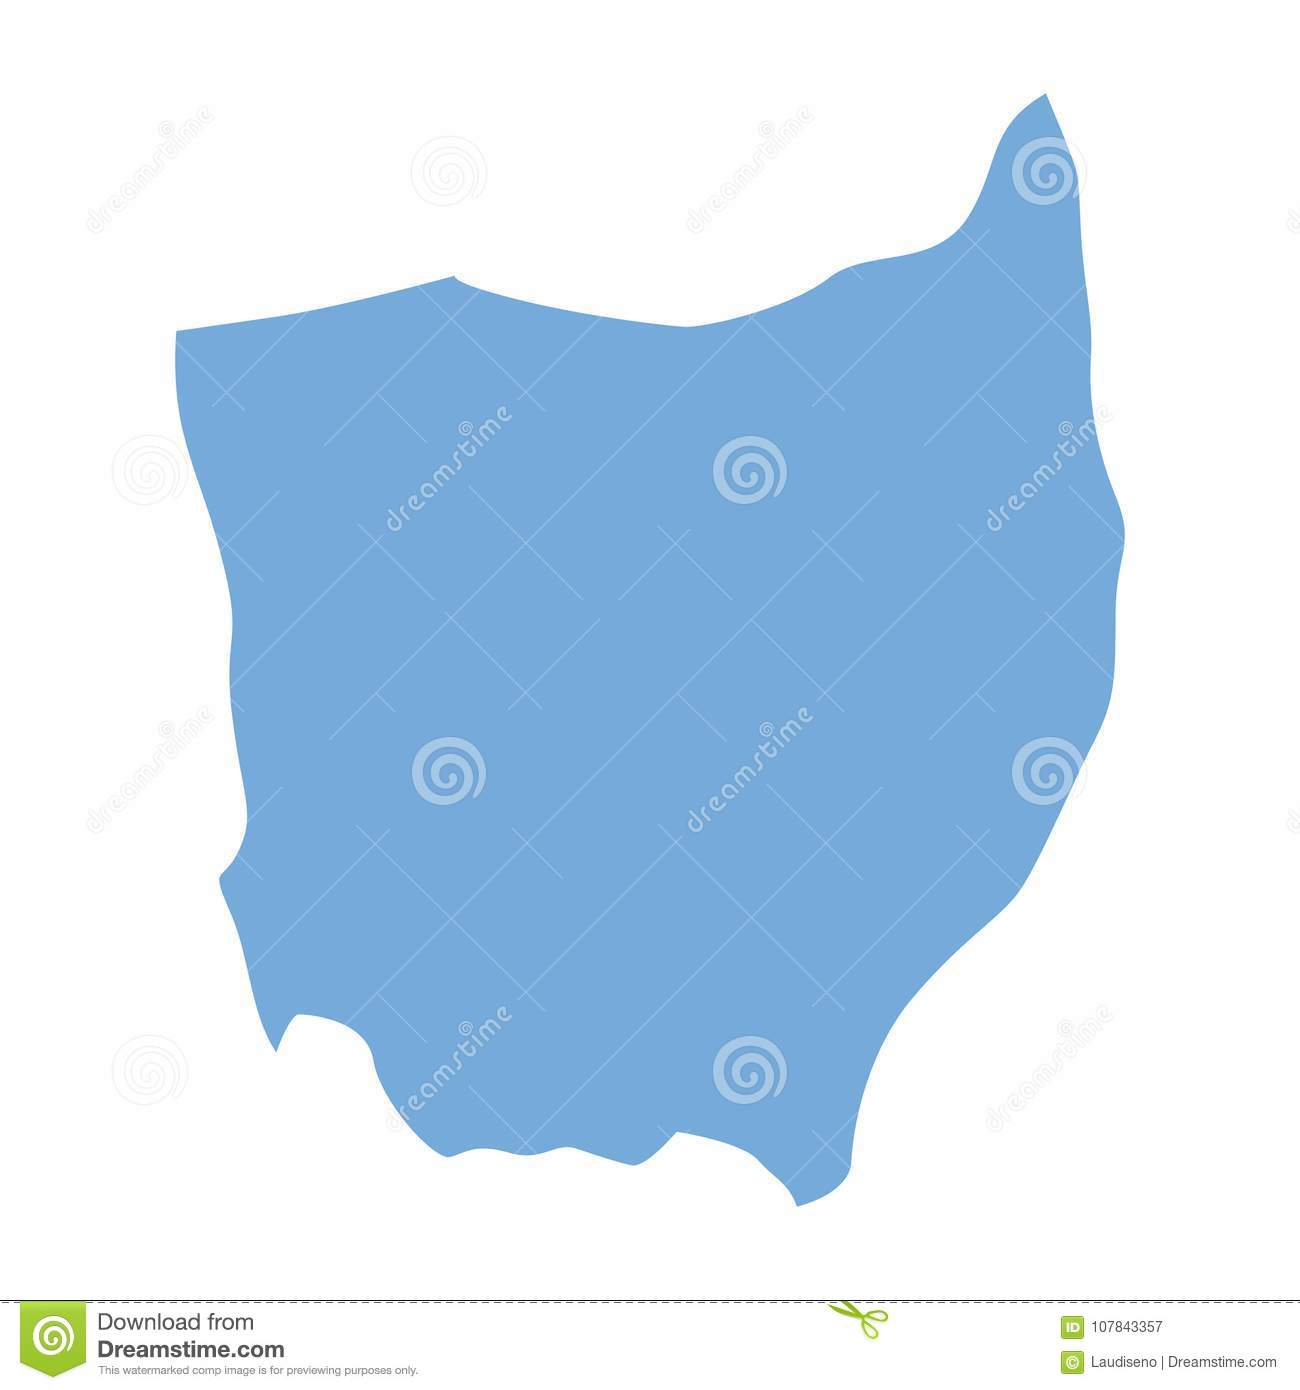 Ohio State map stock vector. Illustration of geography - 107843357